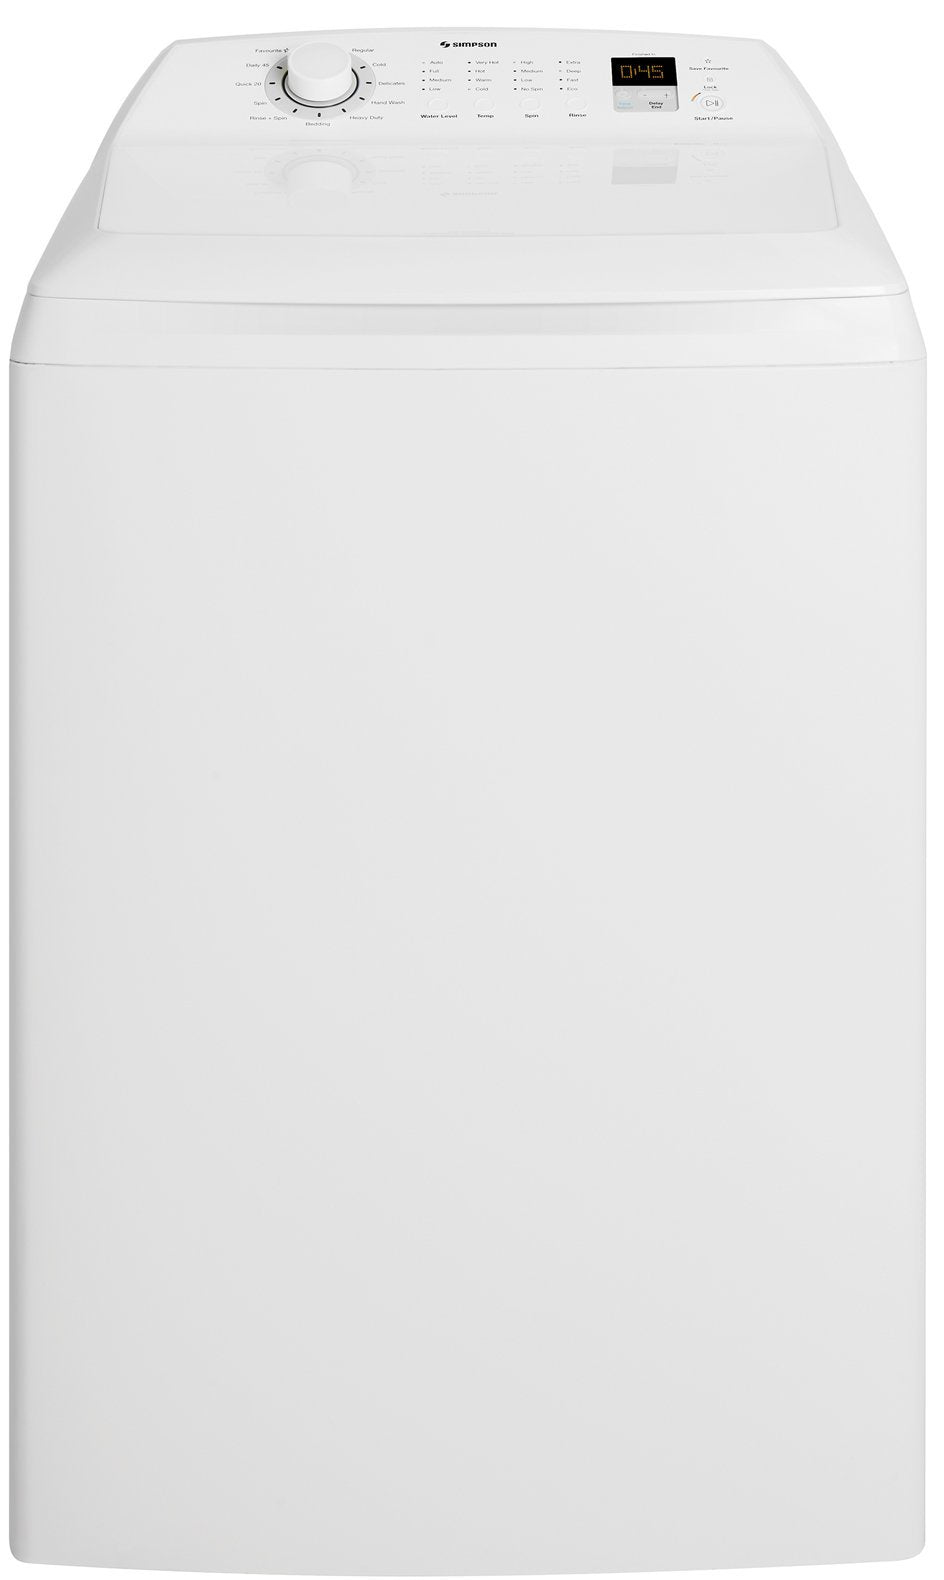 Simpson SWT9043 9kg Top Load Washing Machine